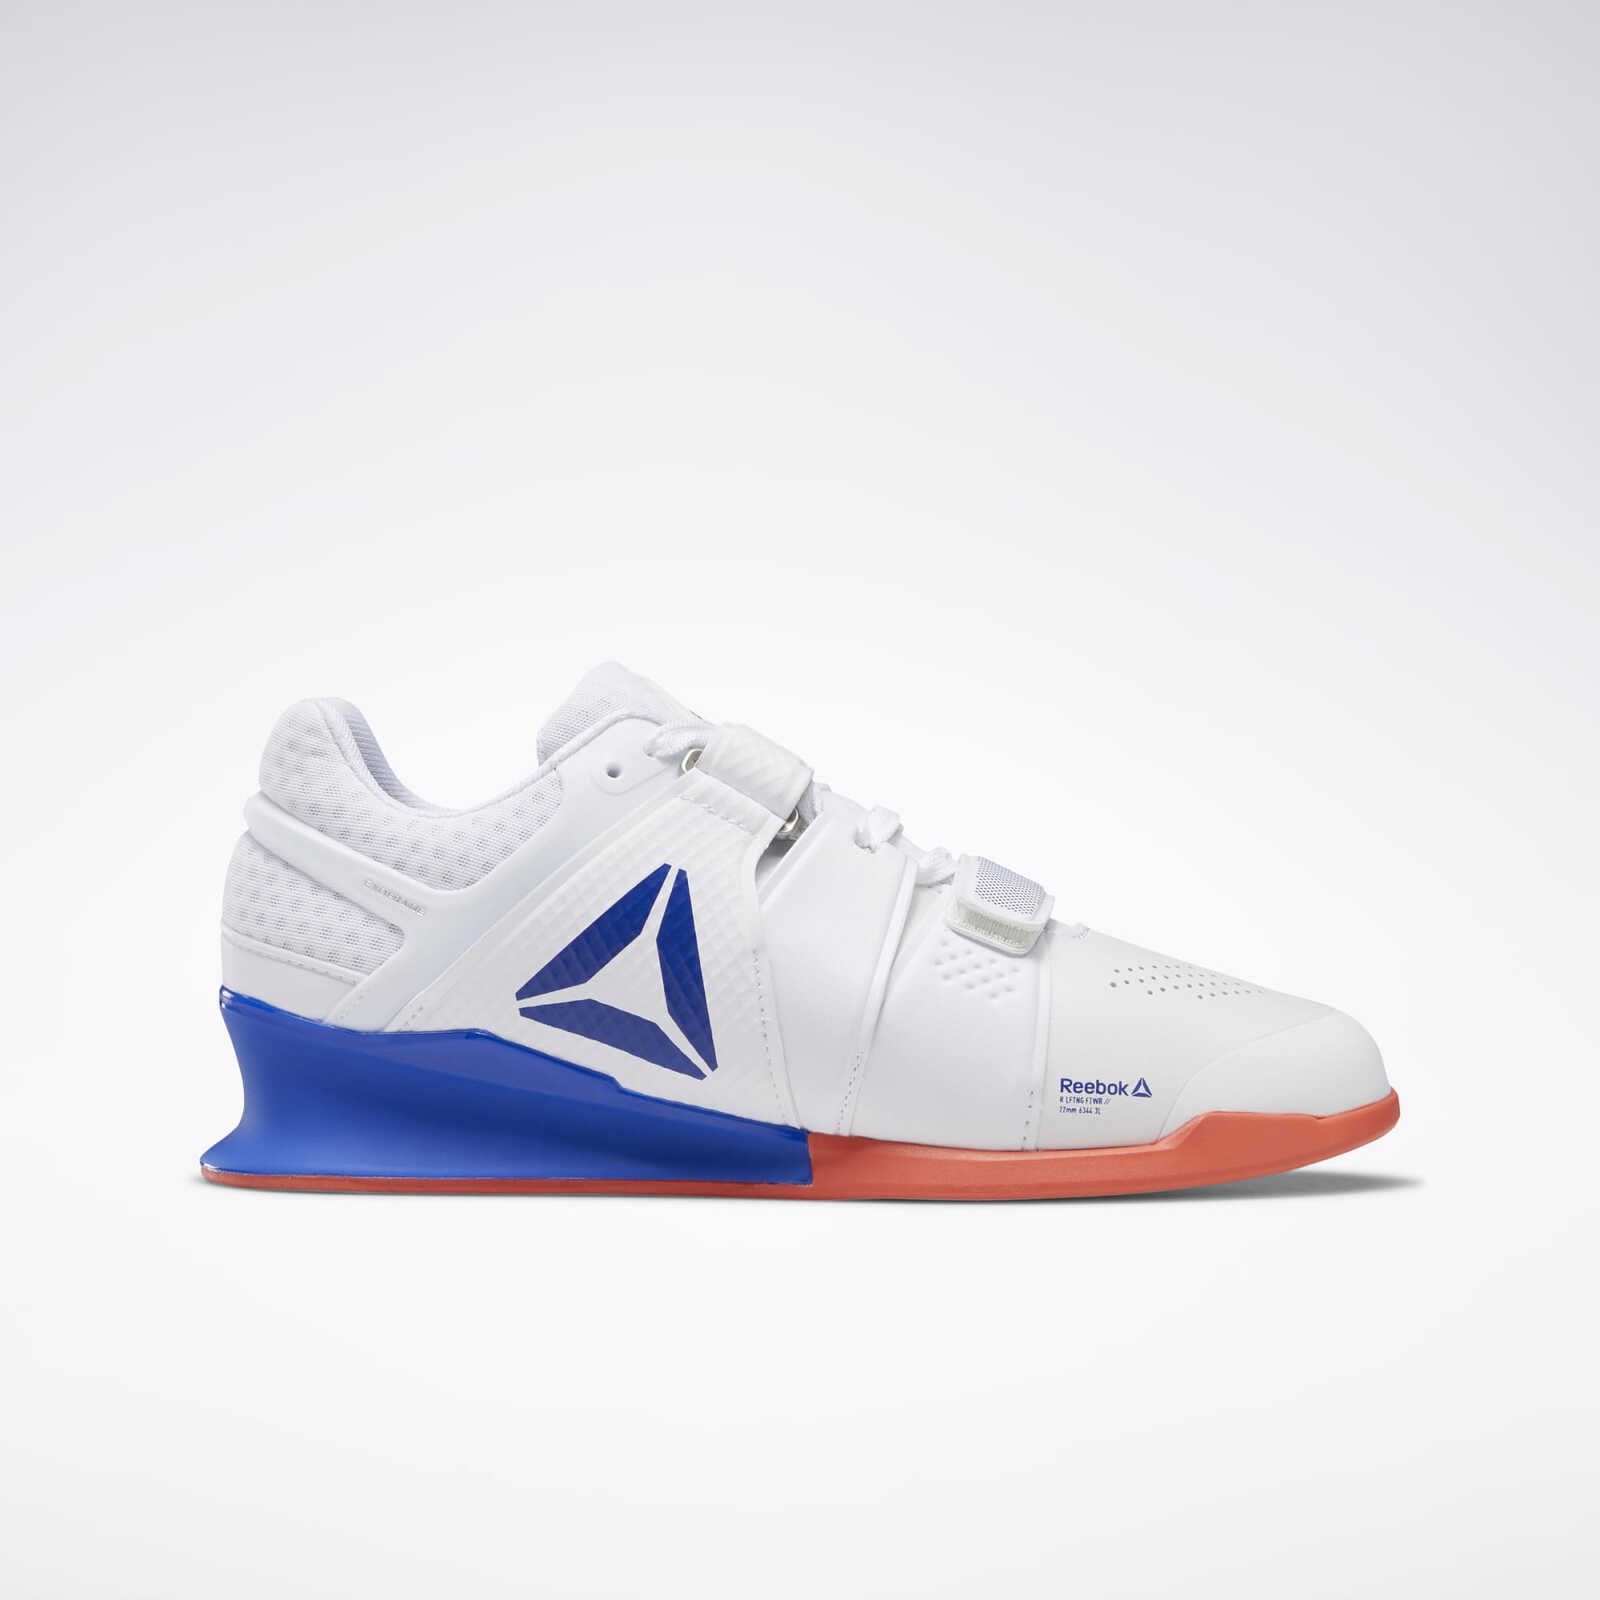 Reebok Legacy Lifter | Kijiji Buy, Sell & Save with